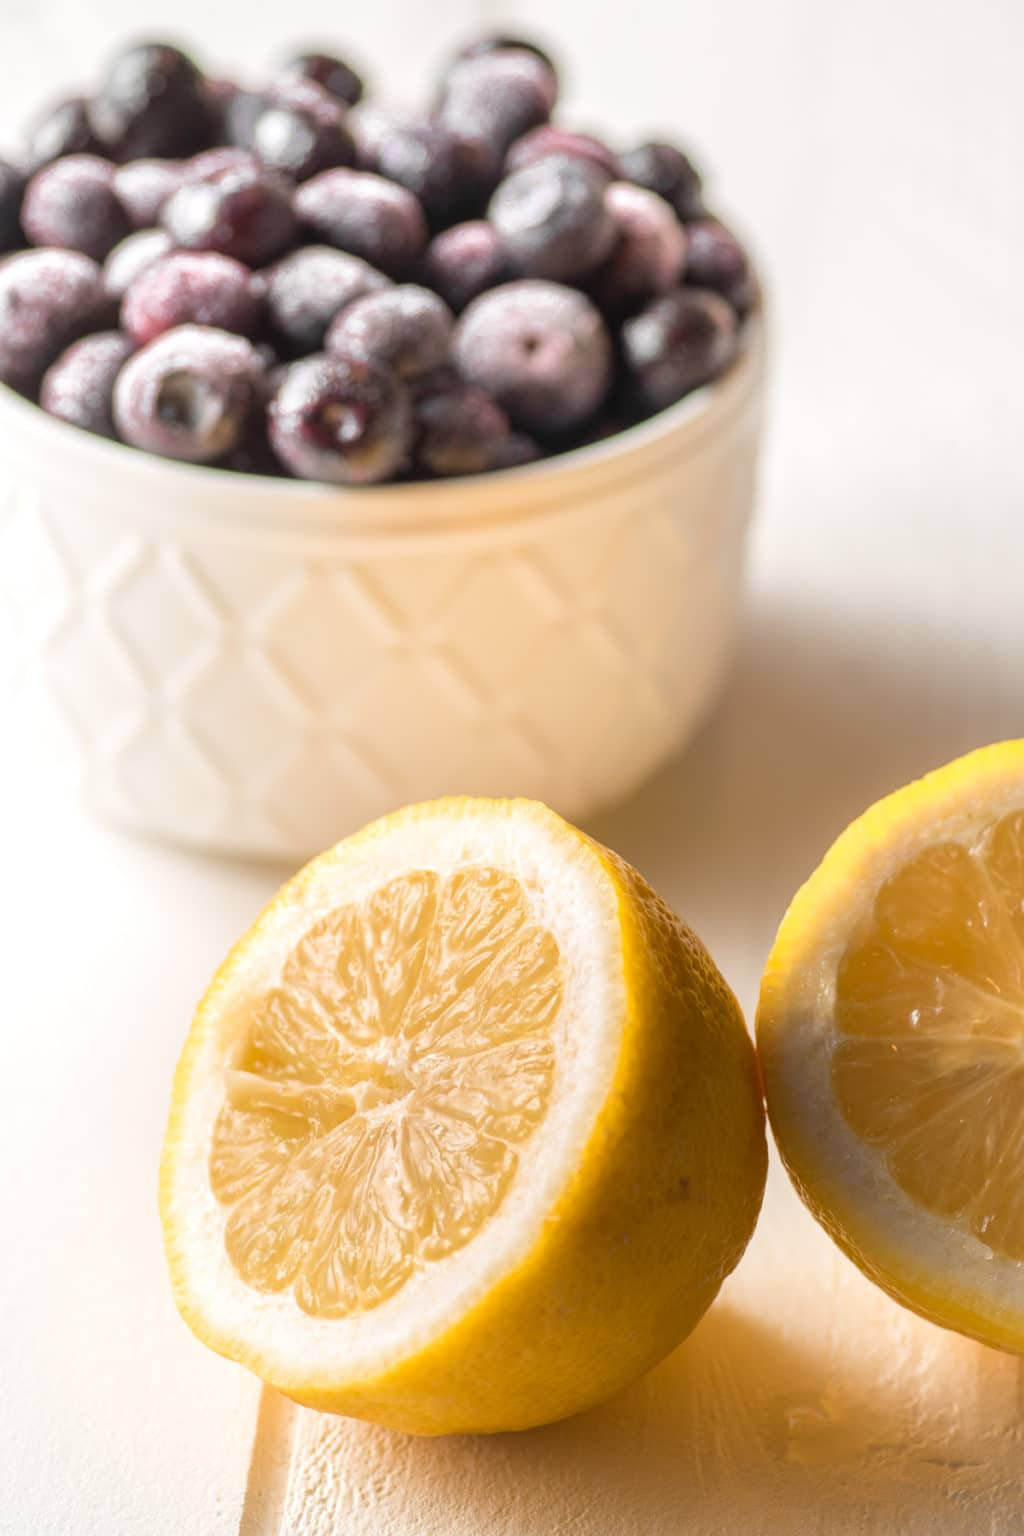 A bowl of frozen blueberries in a textured white bowl with a slice fresh lemon in the foreground.